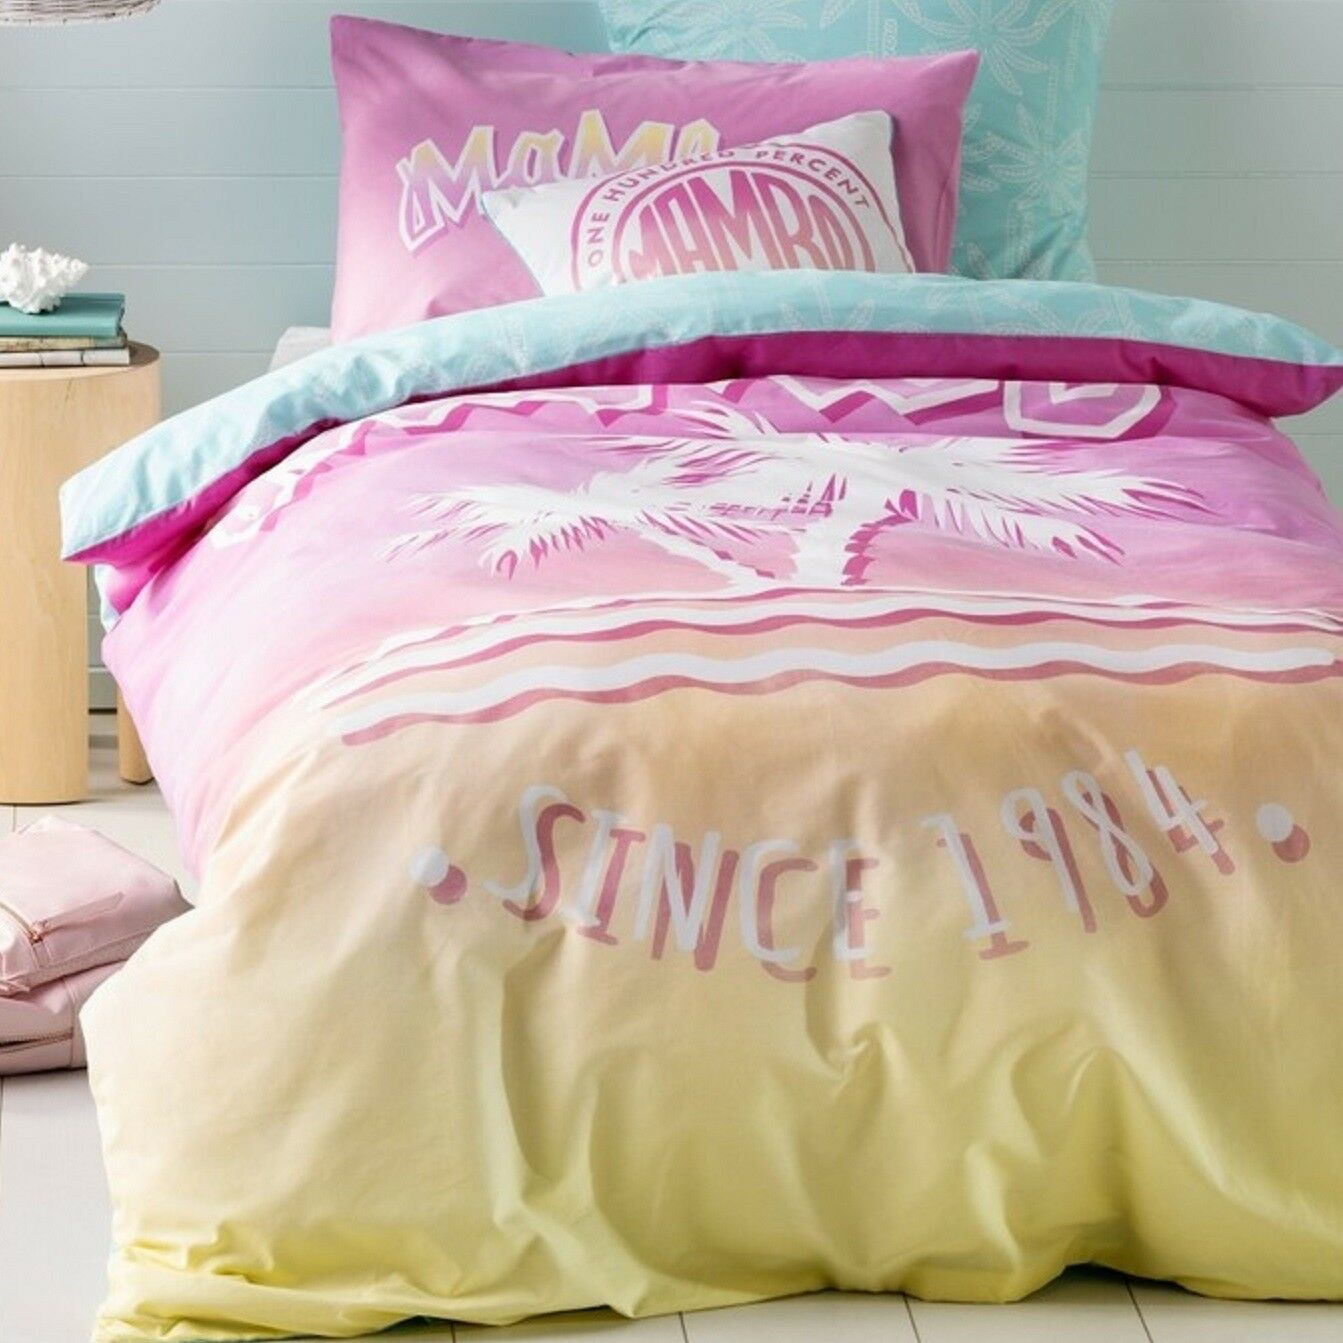 Mambo - Sunset Paradise - Queen Bed Quilt Doona Duvet Cover Set